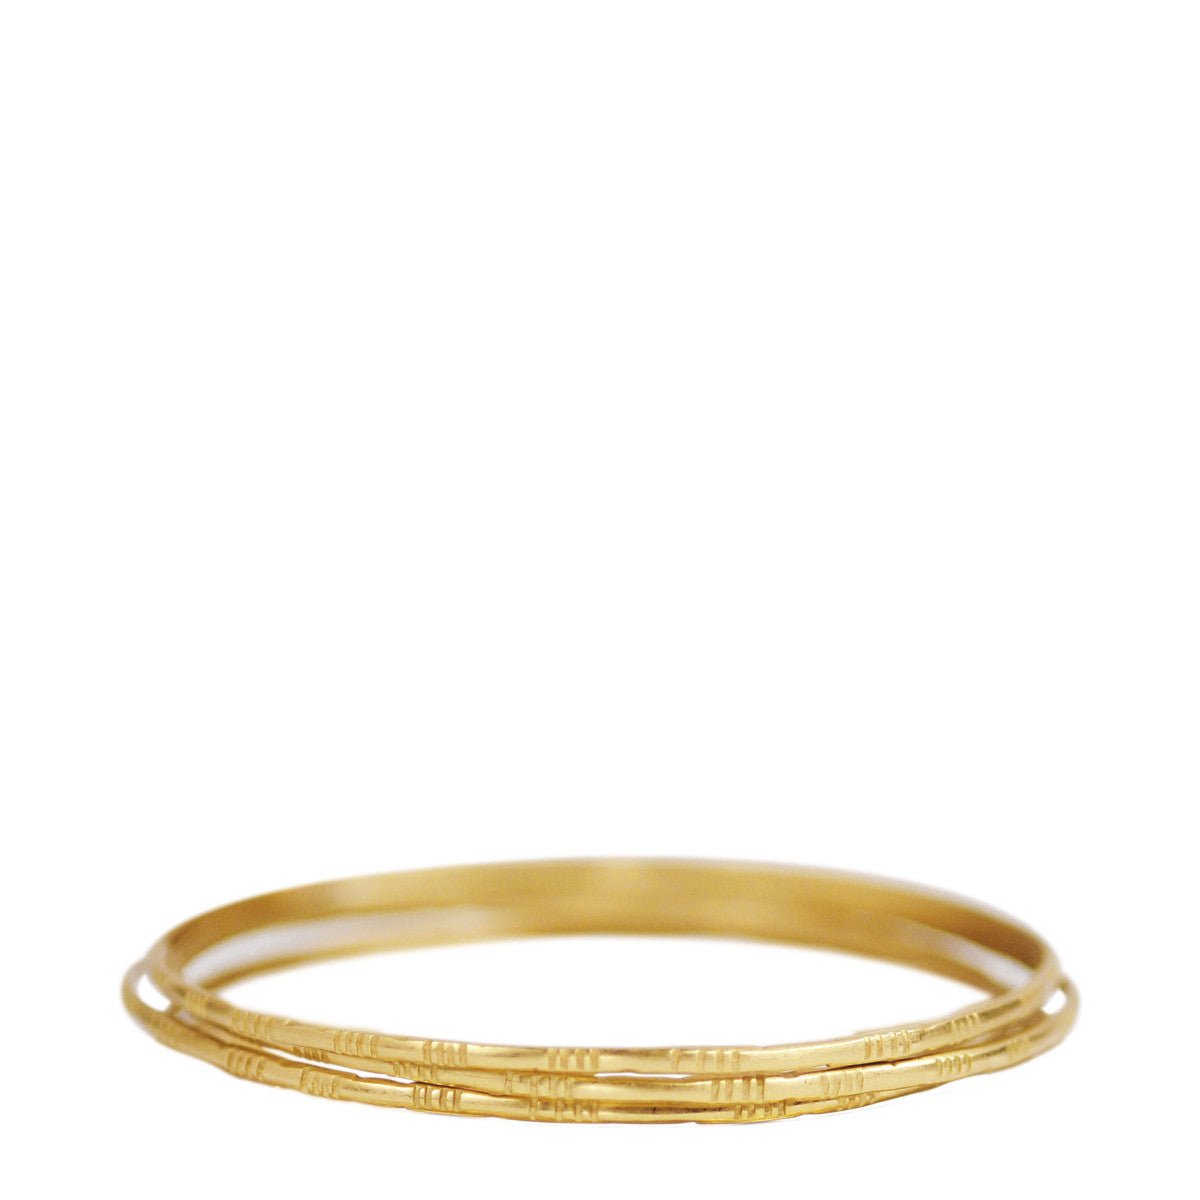 18K Gold Moroccan Bangles (Set of 3)